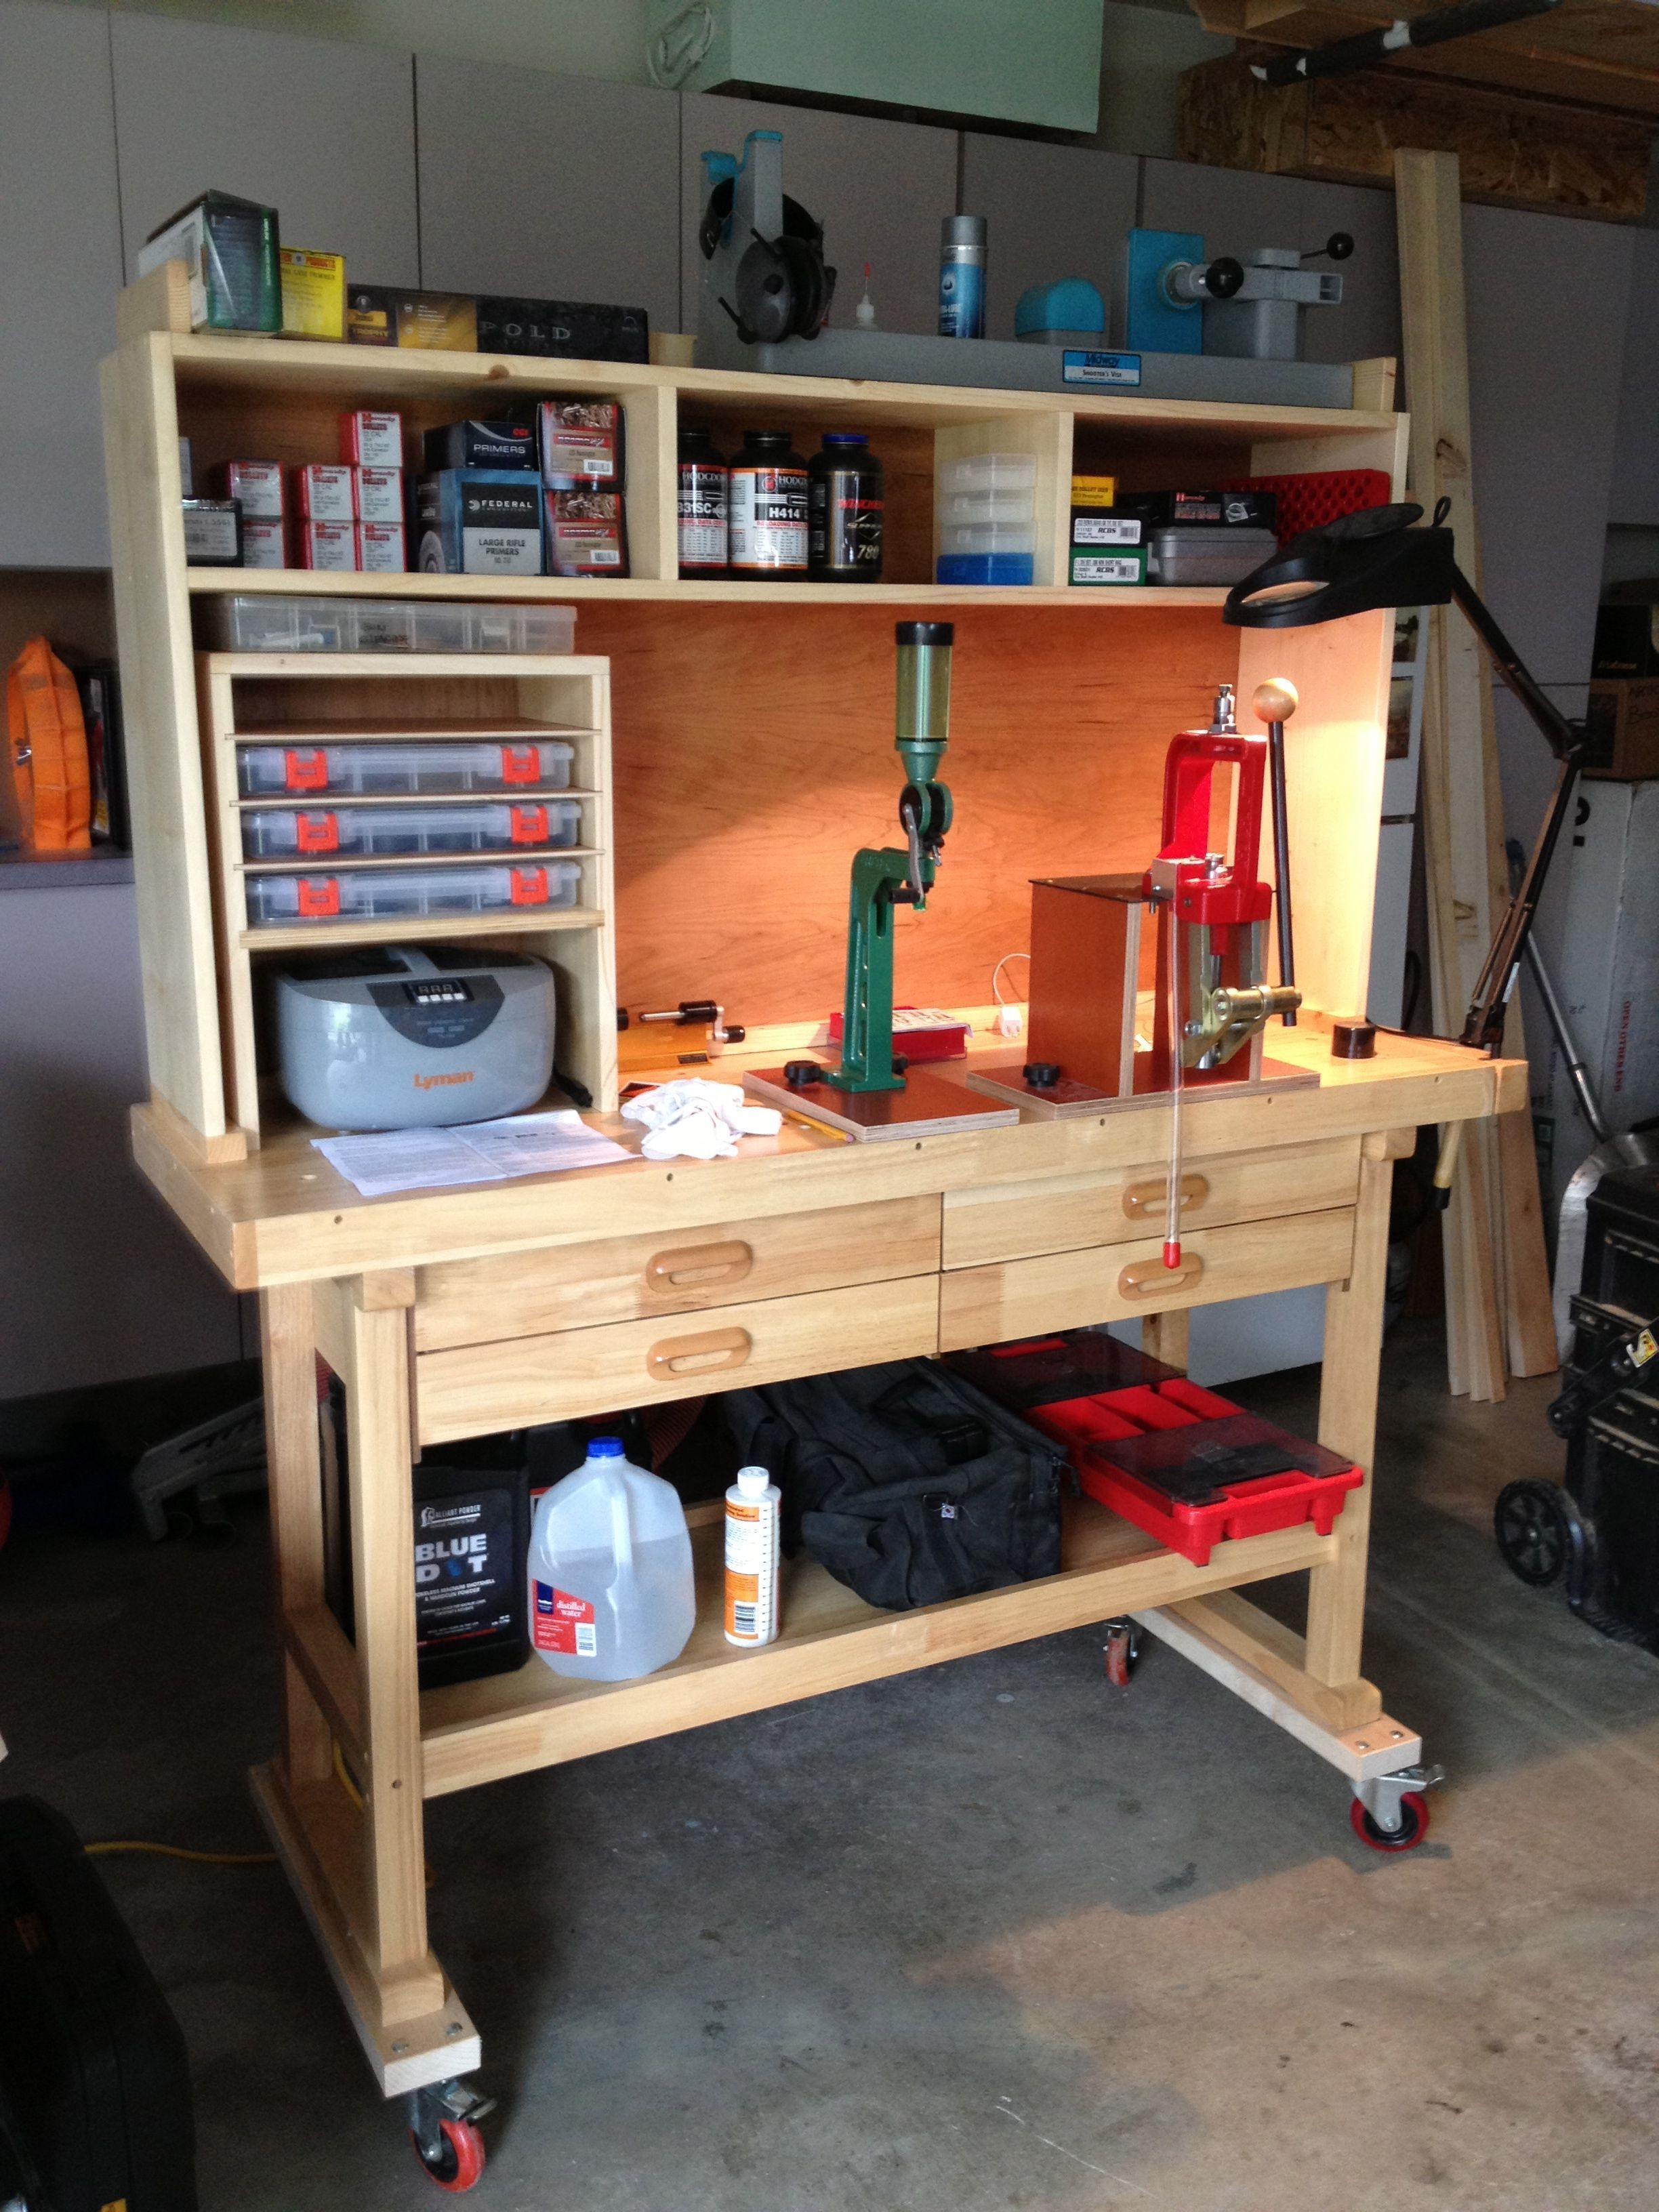 This Is A Harbor Freight Woodworking Bench I Had Purchased For 135 00 Then I Added The Castors And Shelving Reloading Bench Woodworking Bench Reloading Table